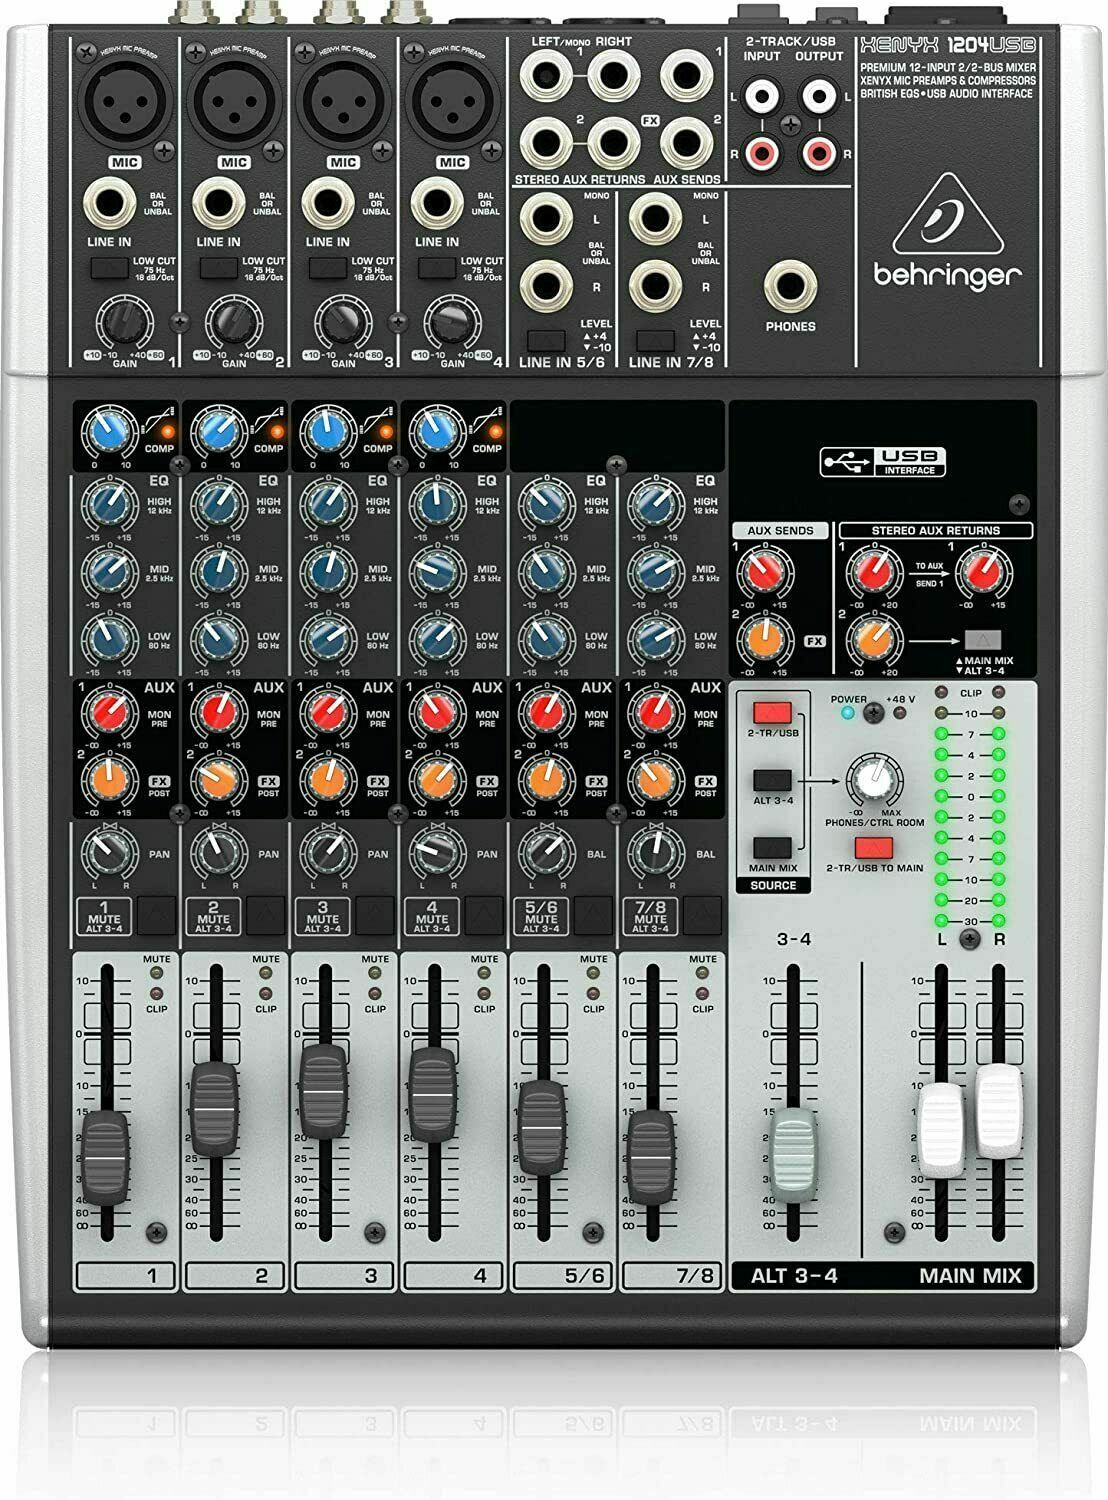 Behringer 1204USB 12-Channel USB Mixer Board w/ Mic Preamp Interface *GREAT GIFT. Buy it now for 227.85